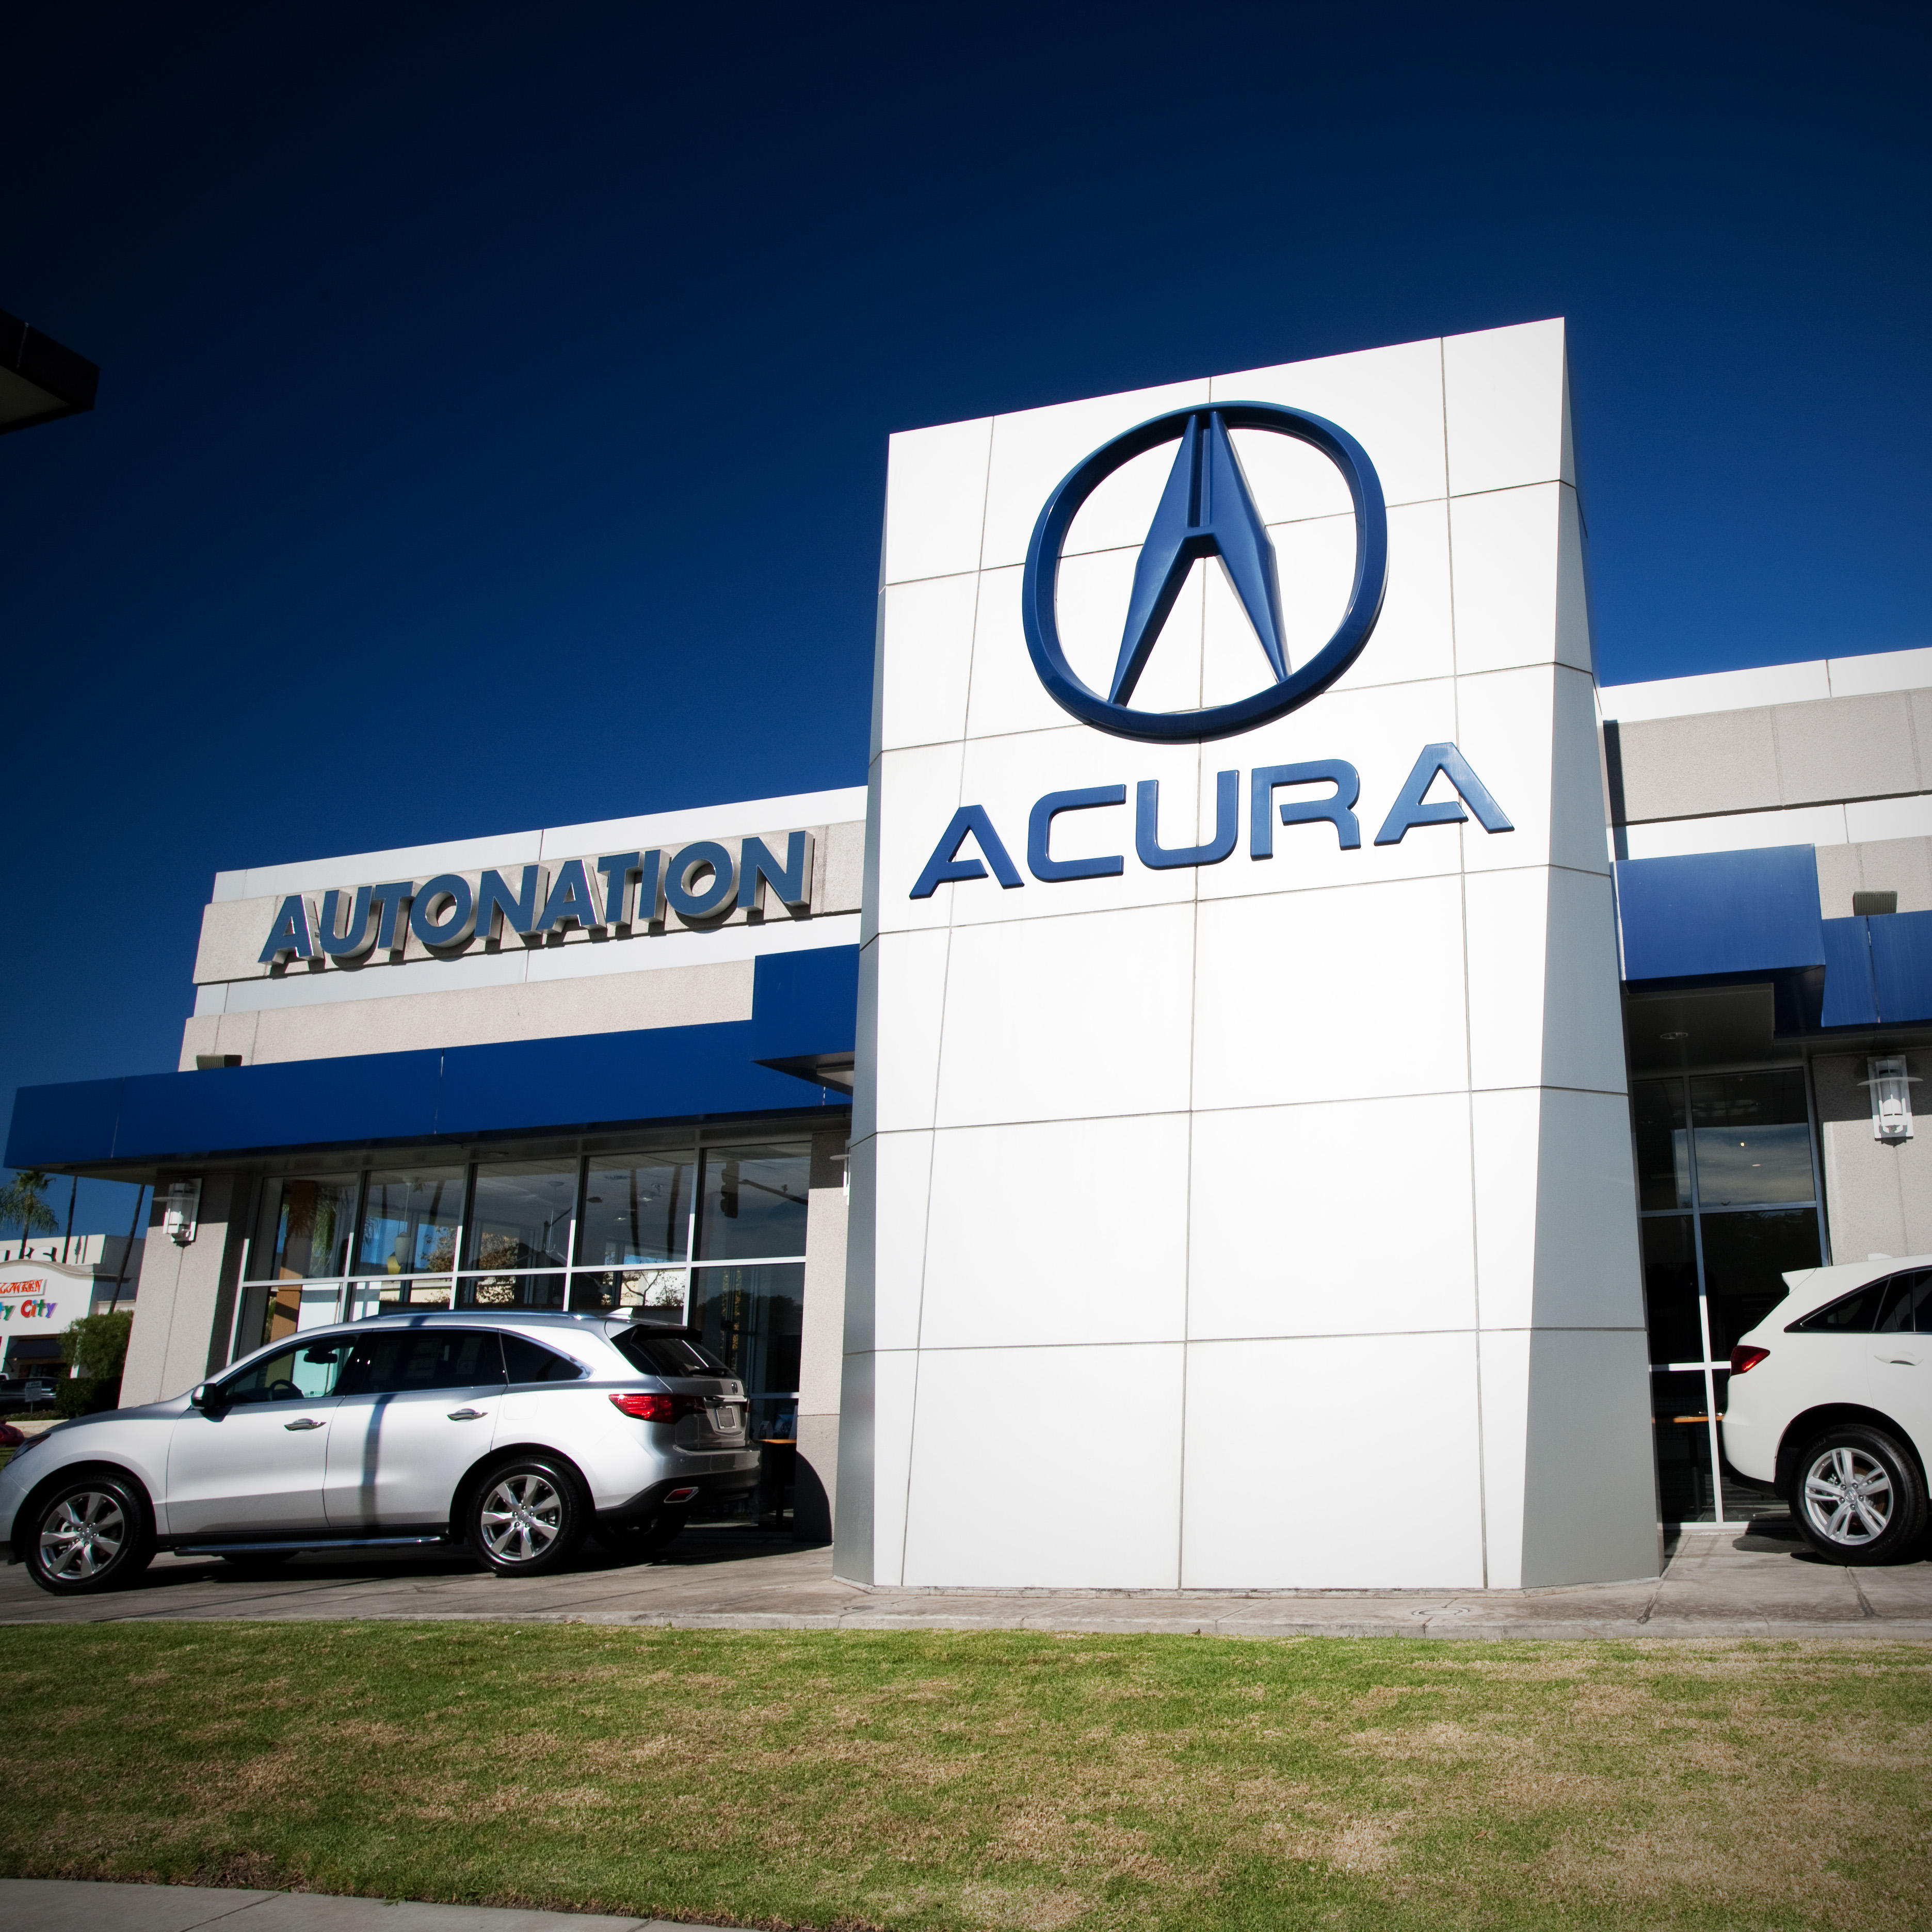 AutoNation Acura South Bay In Torrance, CA